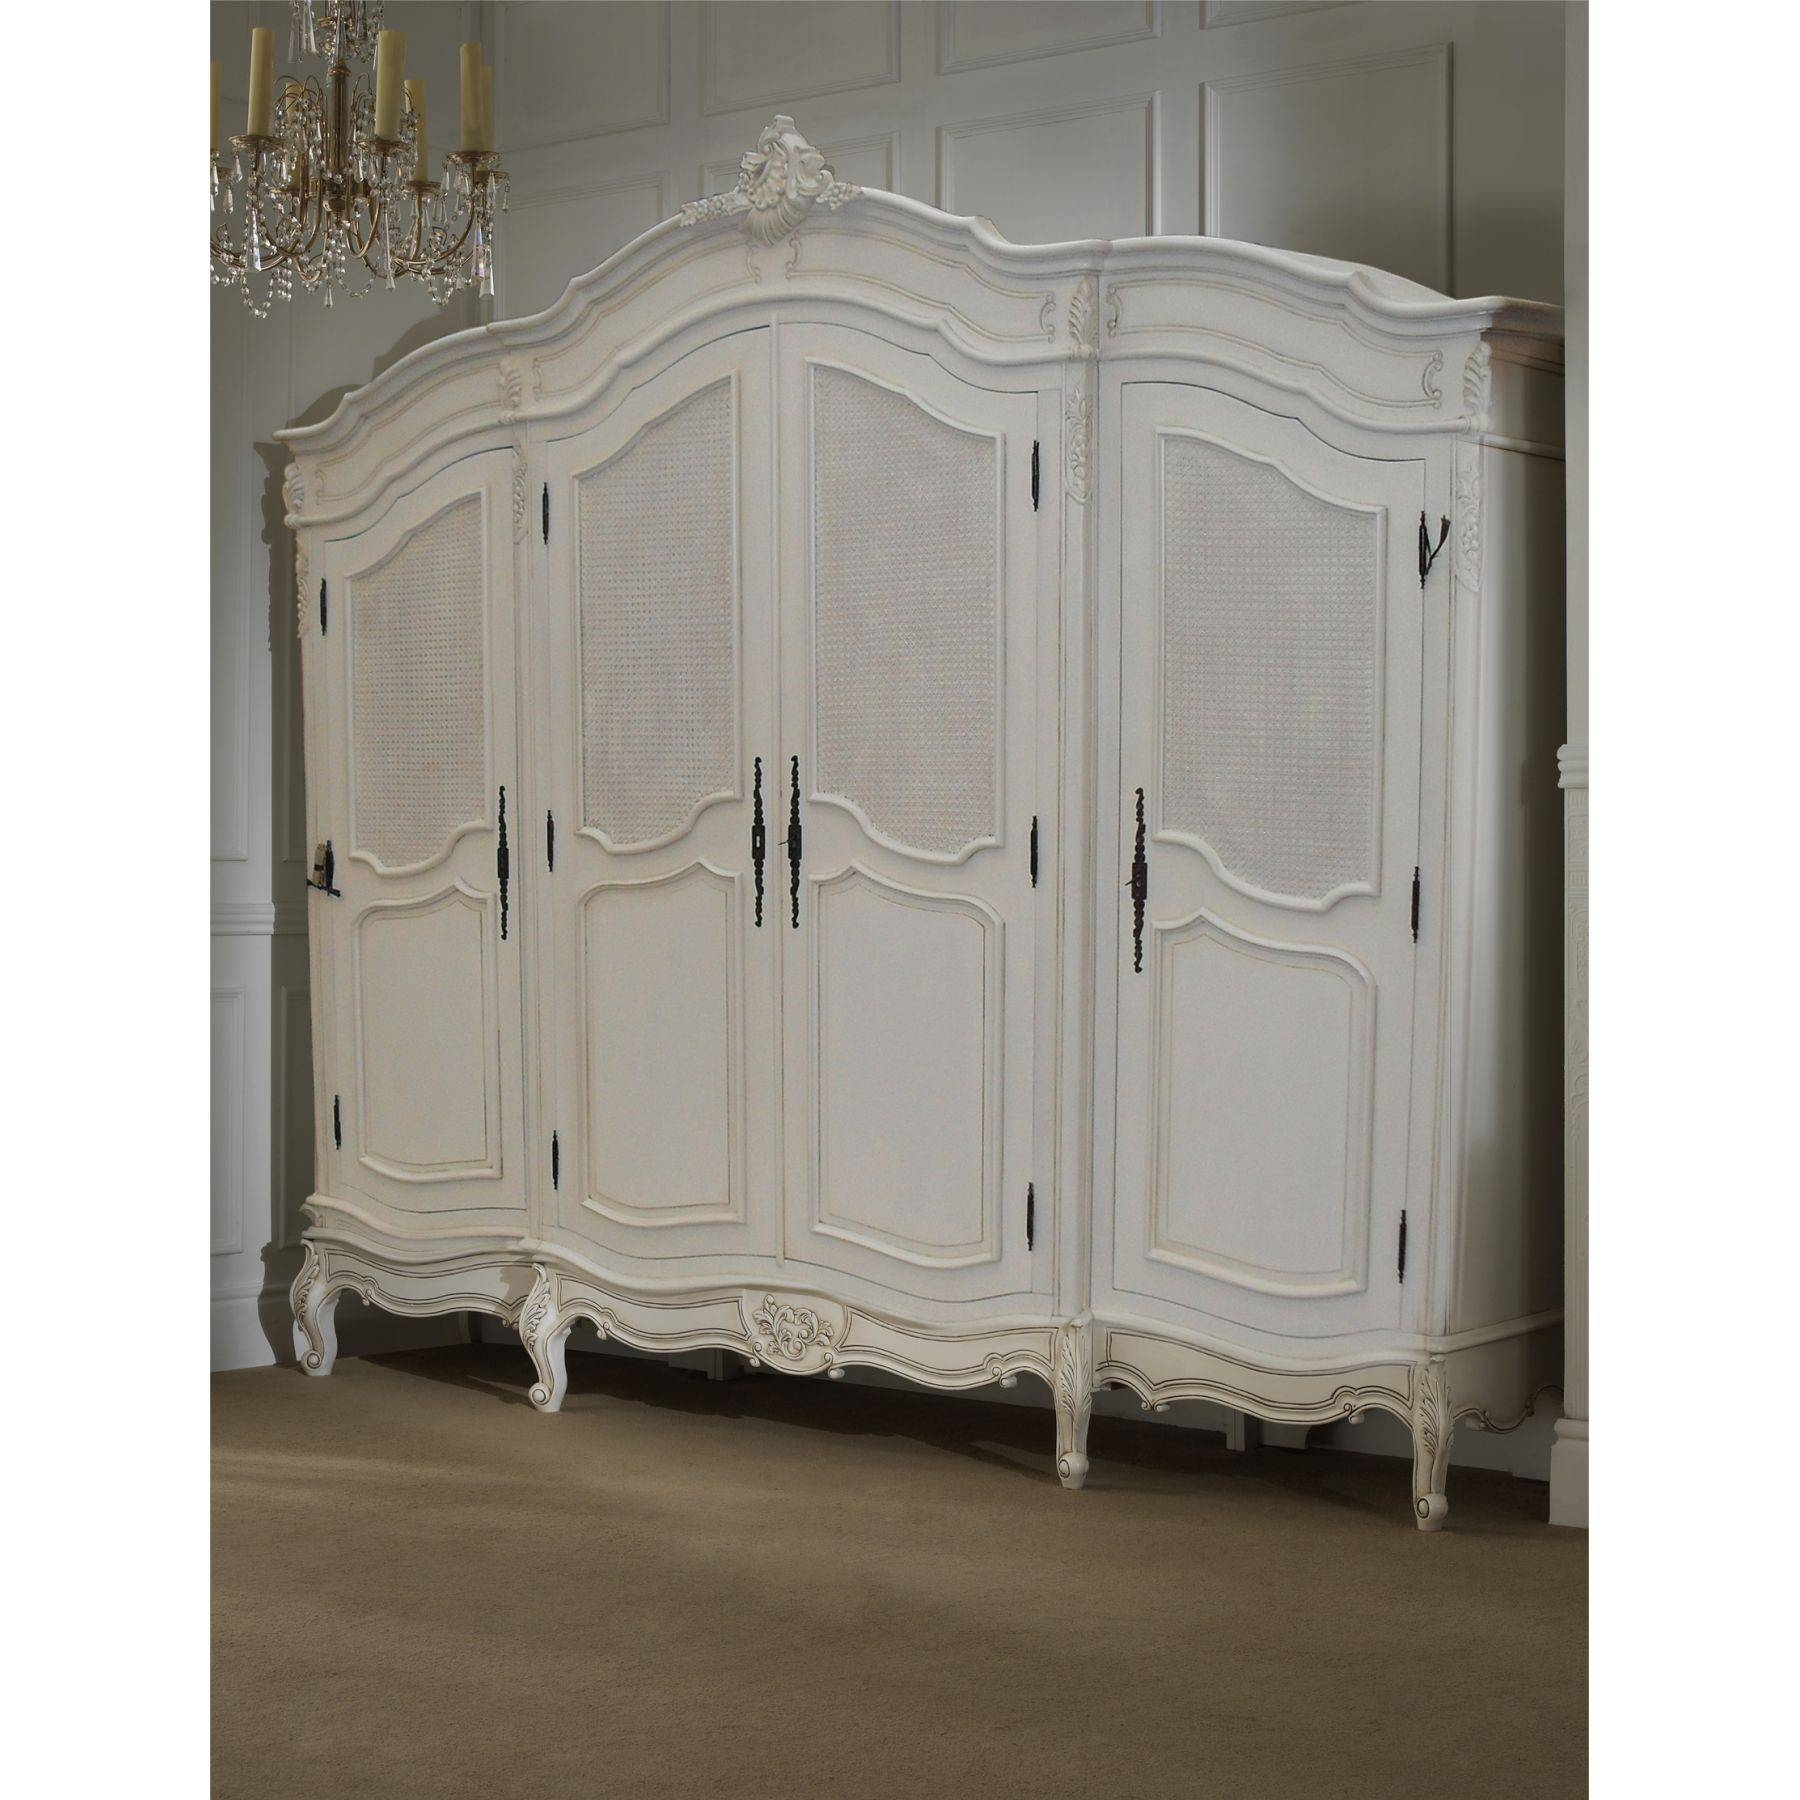 Rochelle Antique French Rattan Bed (Size: King) + La Rochelle 4 pertaining to Rattan Wardrobes (Image 11 of 15)